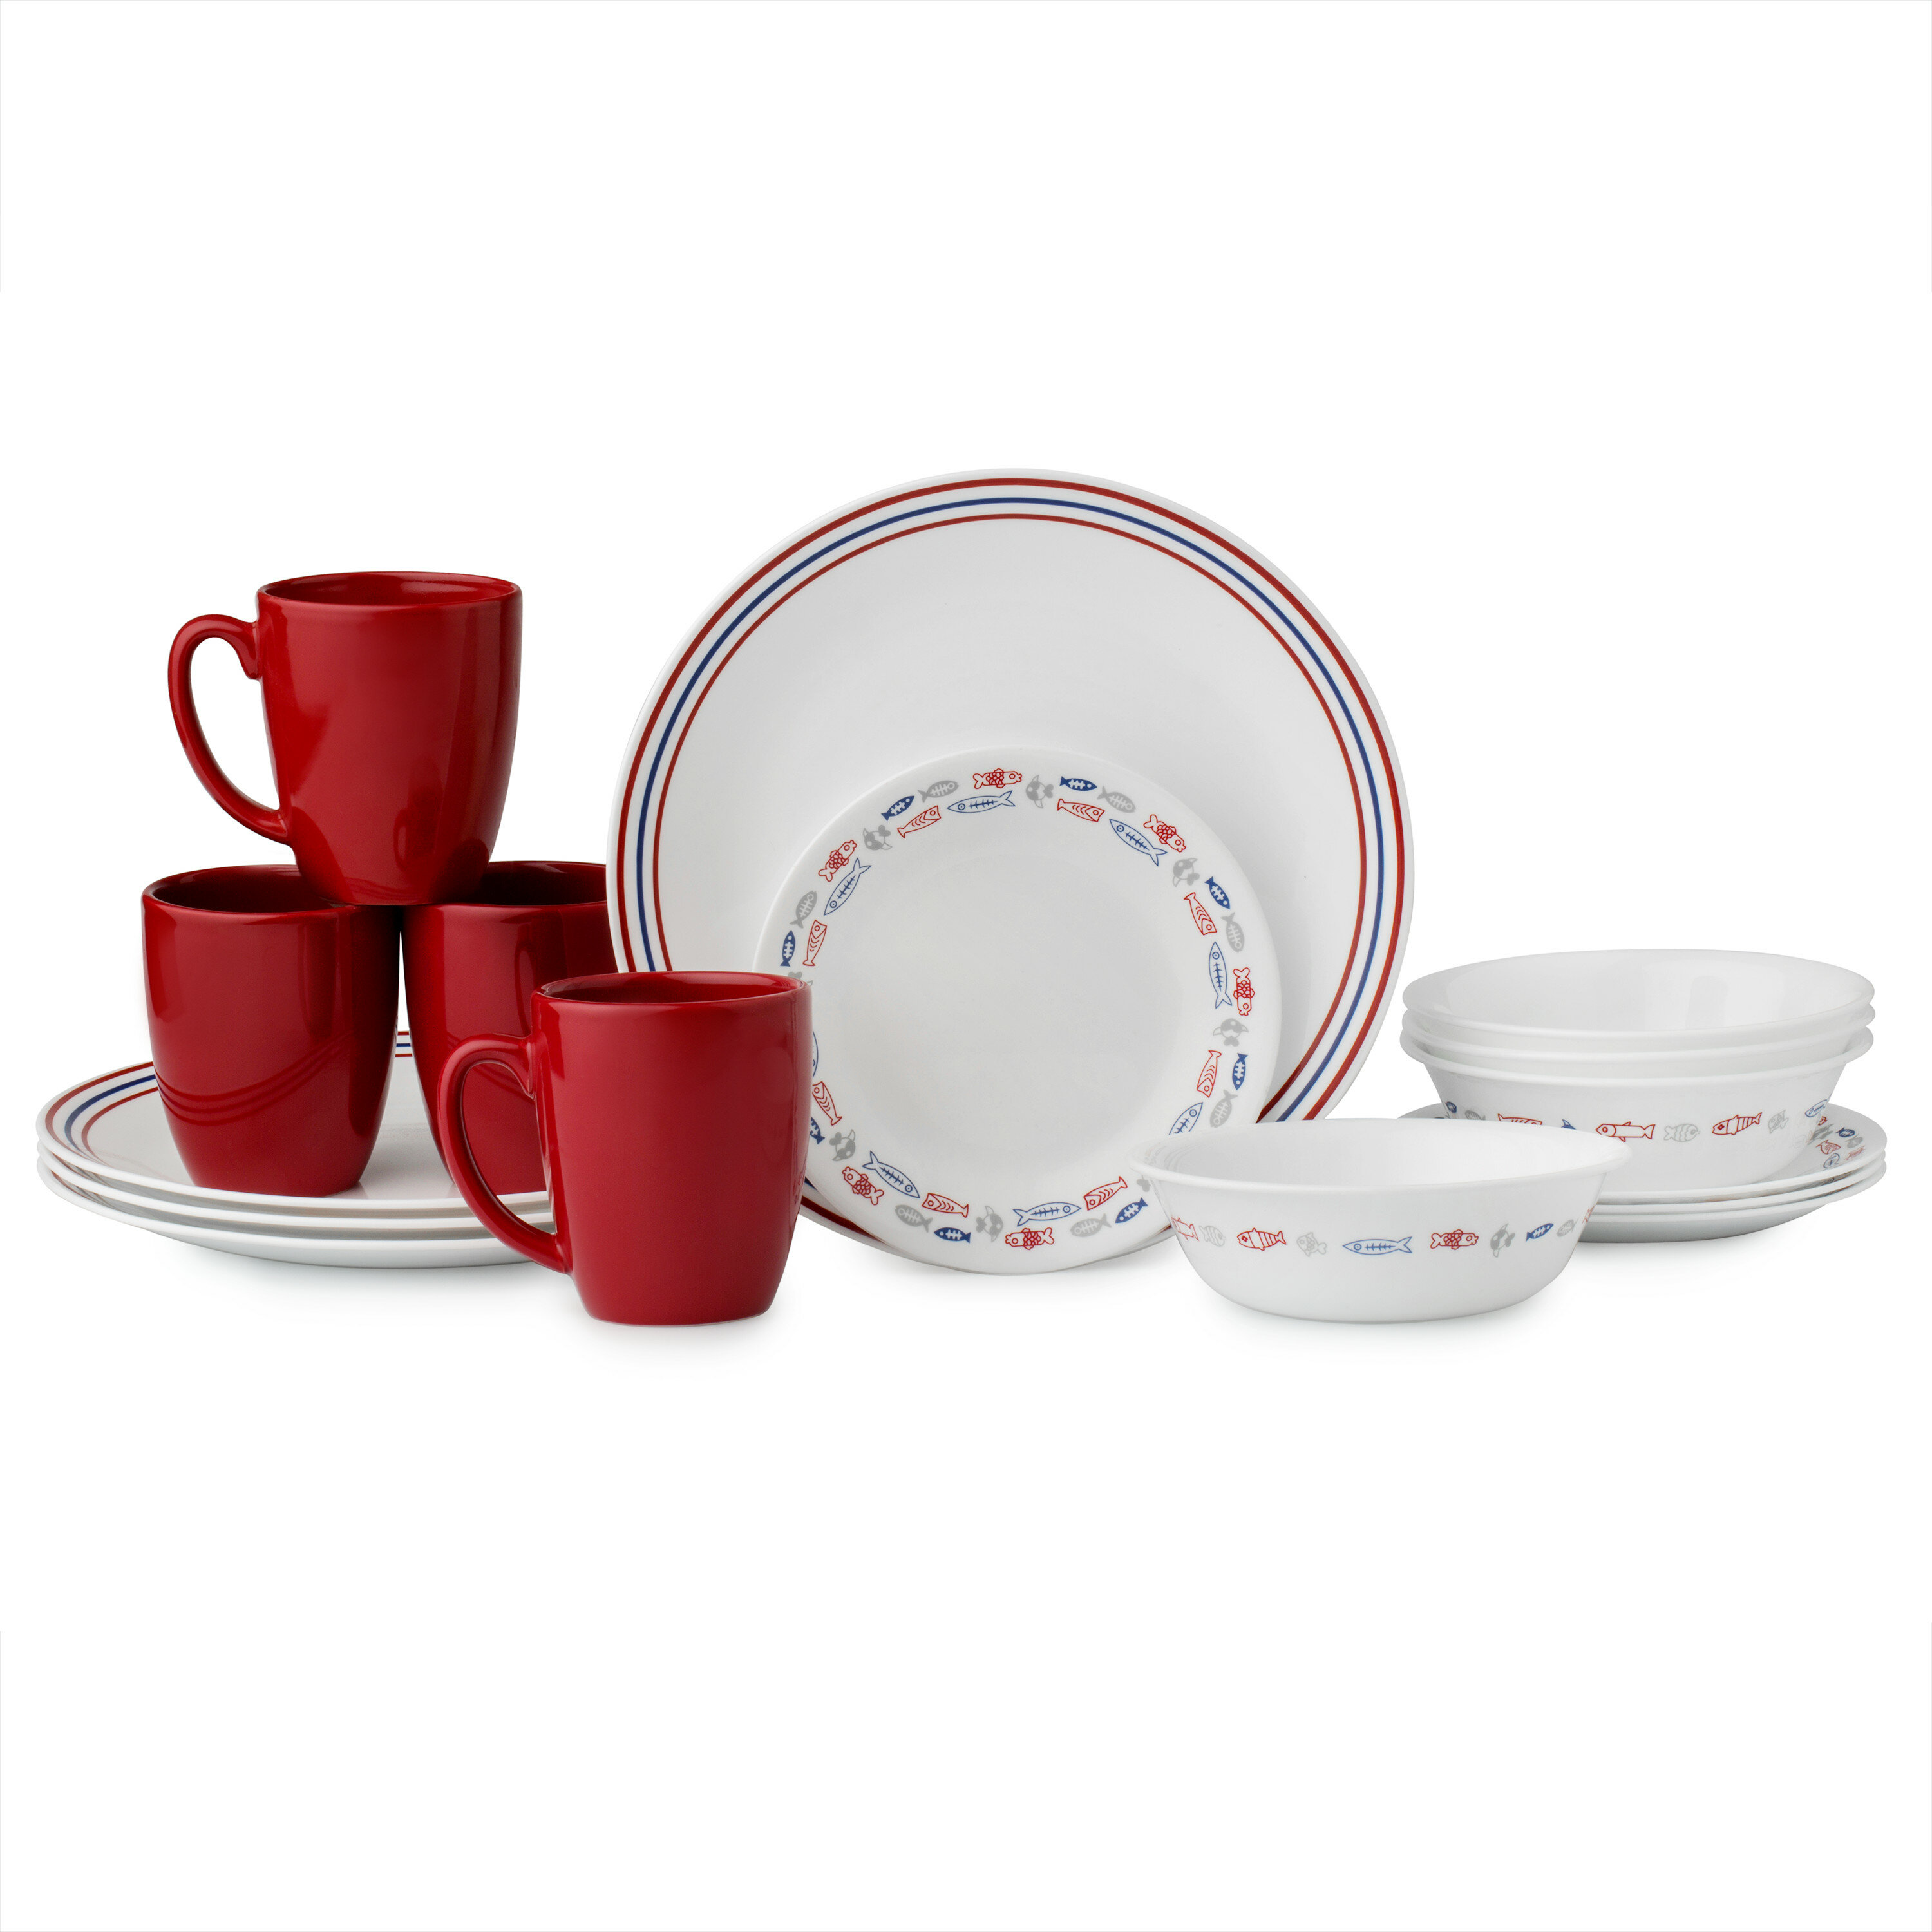 16 Pieces Dinner Set Melamine Plates Bowls Cups Fishing Outdoor Camping Crockery